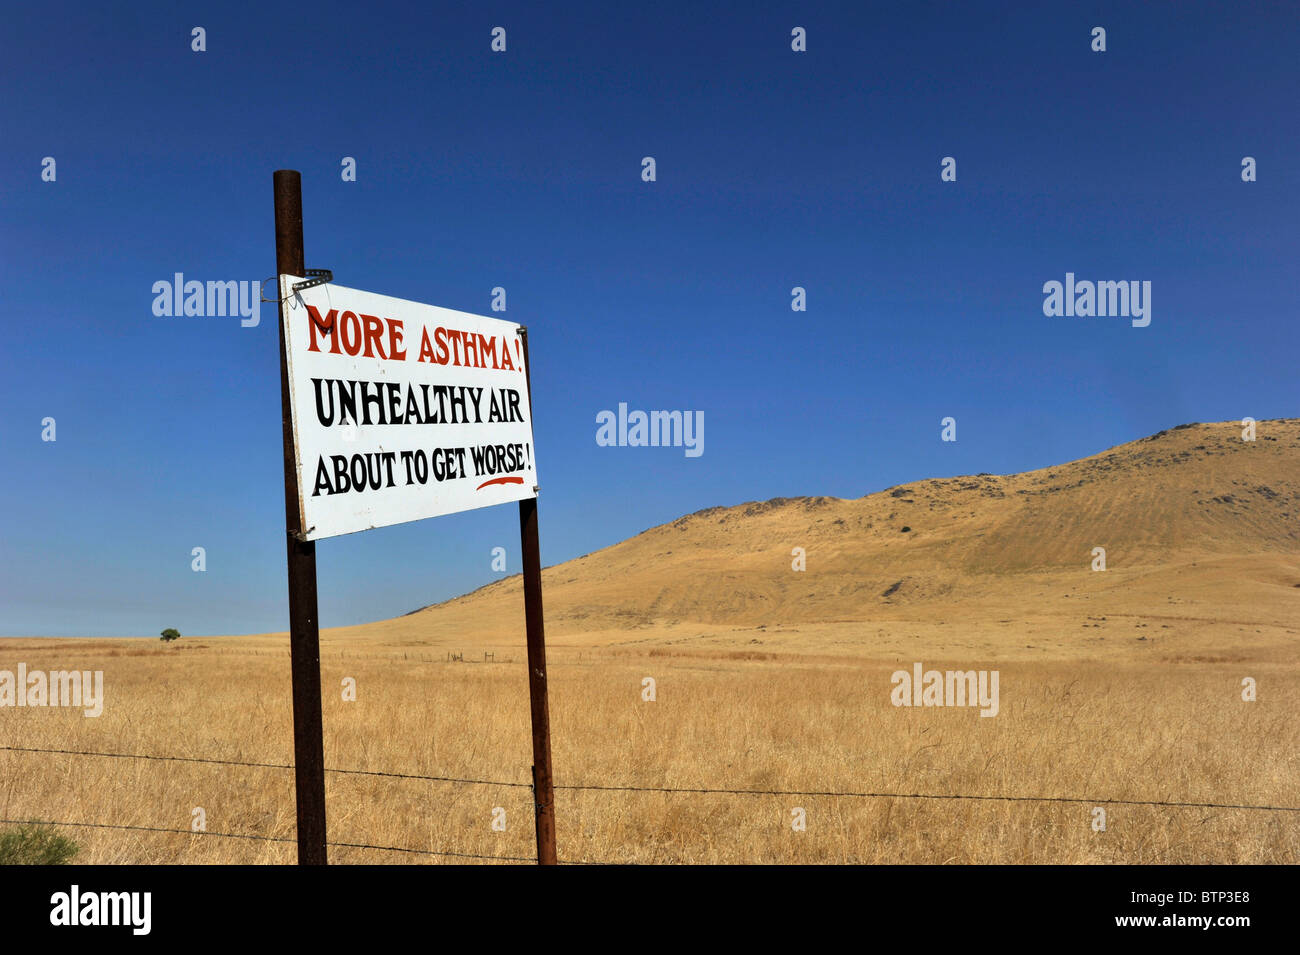 Air pollution sign California - Stock Image